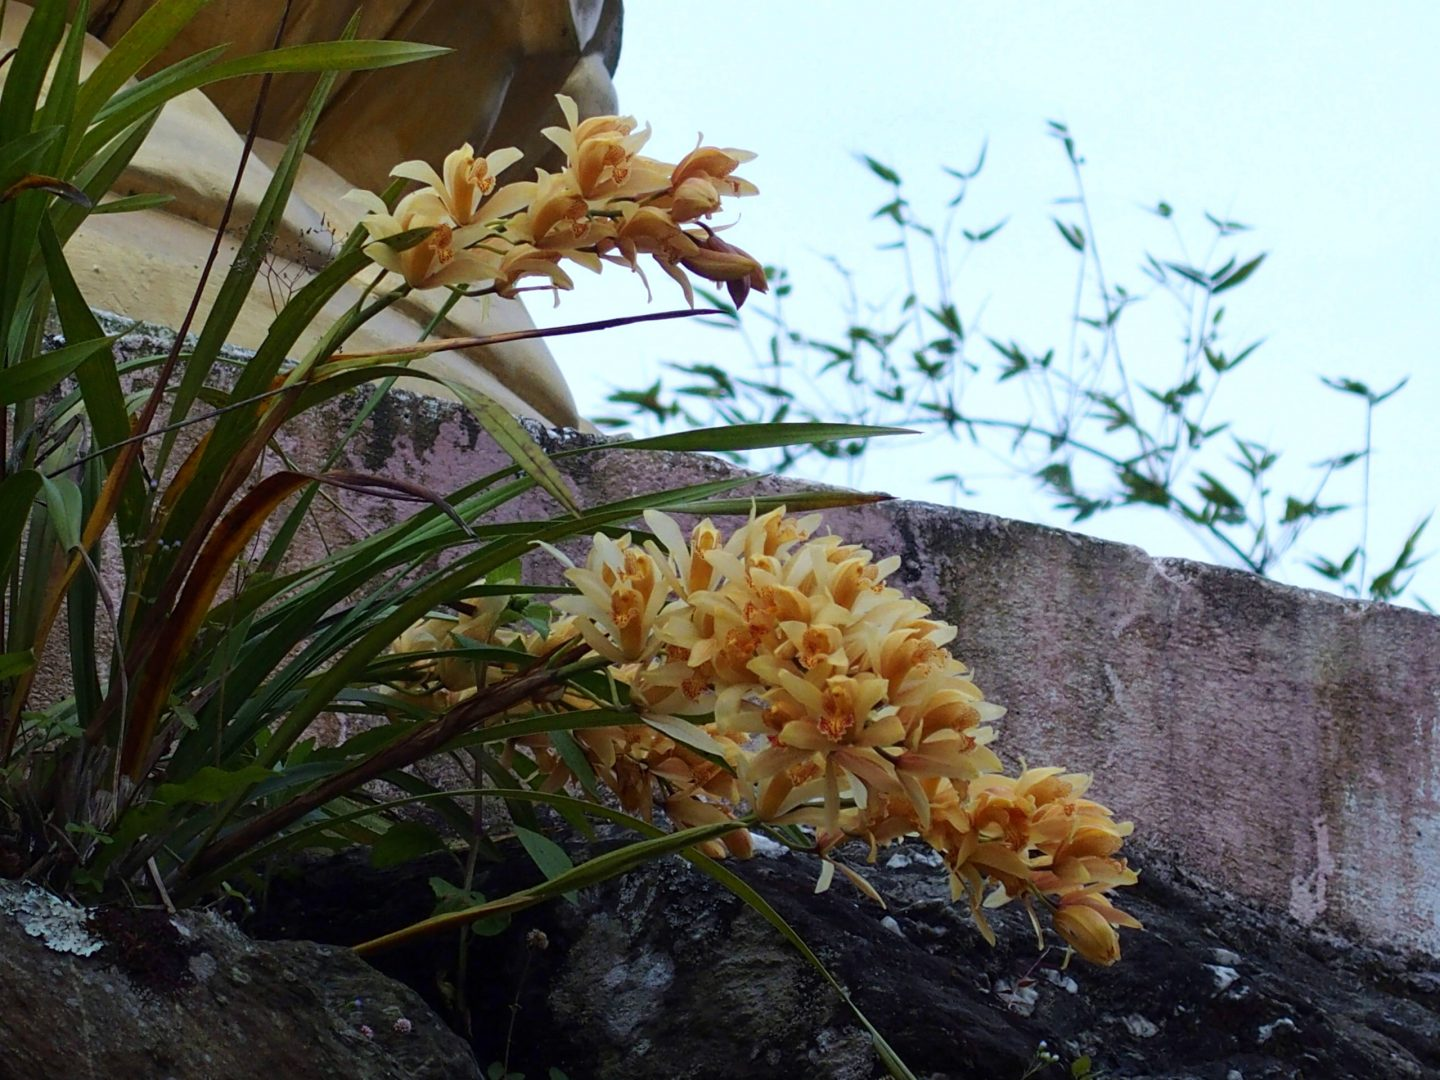 Orchidées sauvages Kalimpong Inde